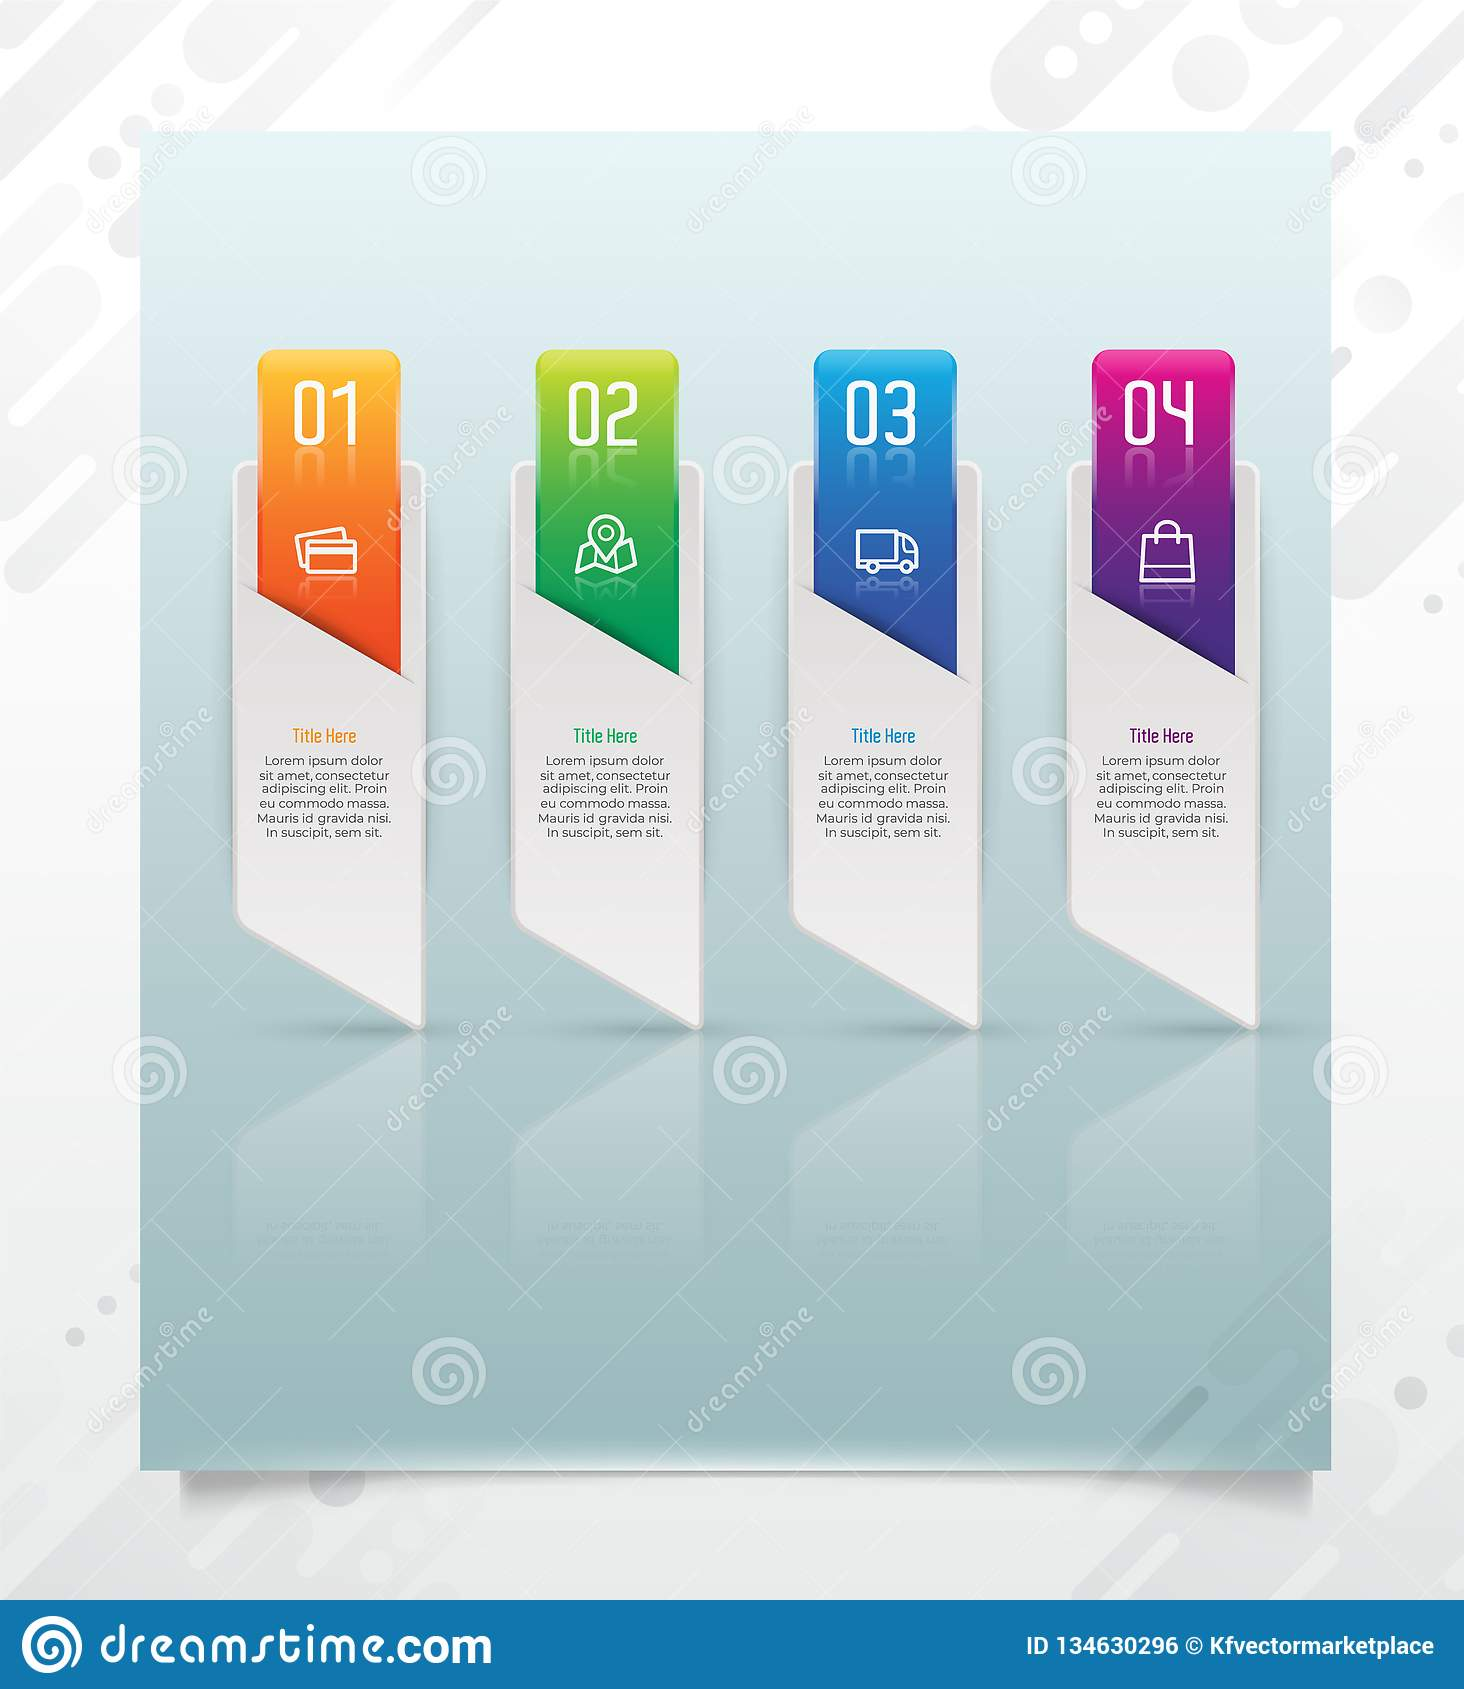 Colorful step square infographic vector design with paper effect for business purpose and can be used for presentation, brochure